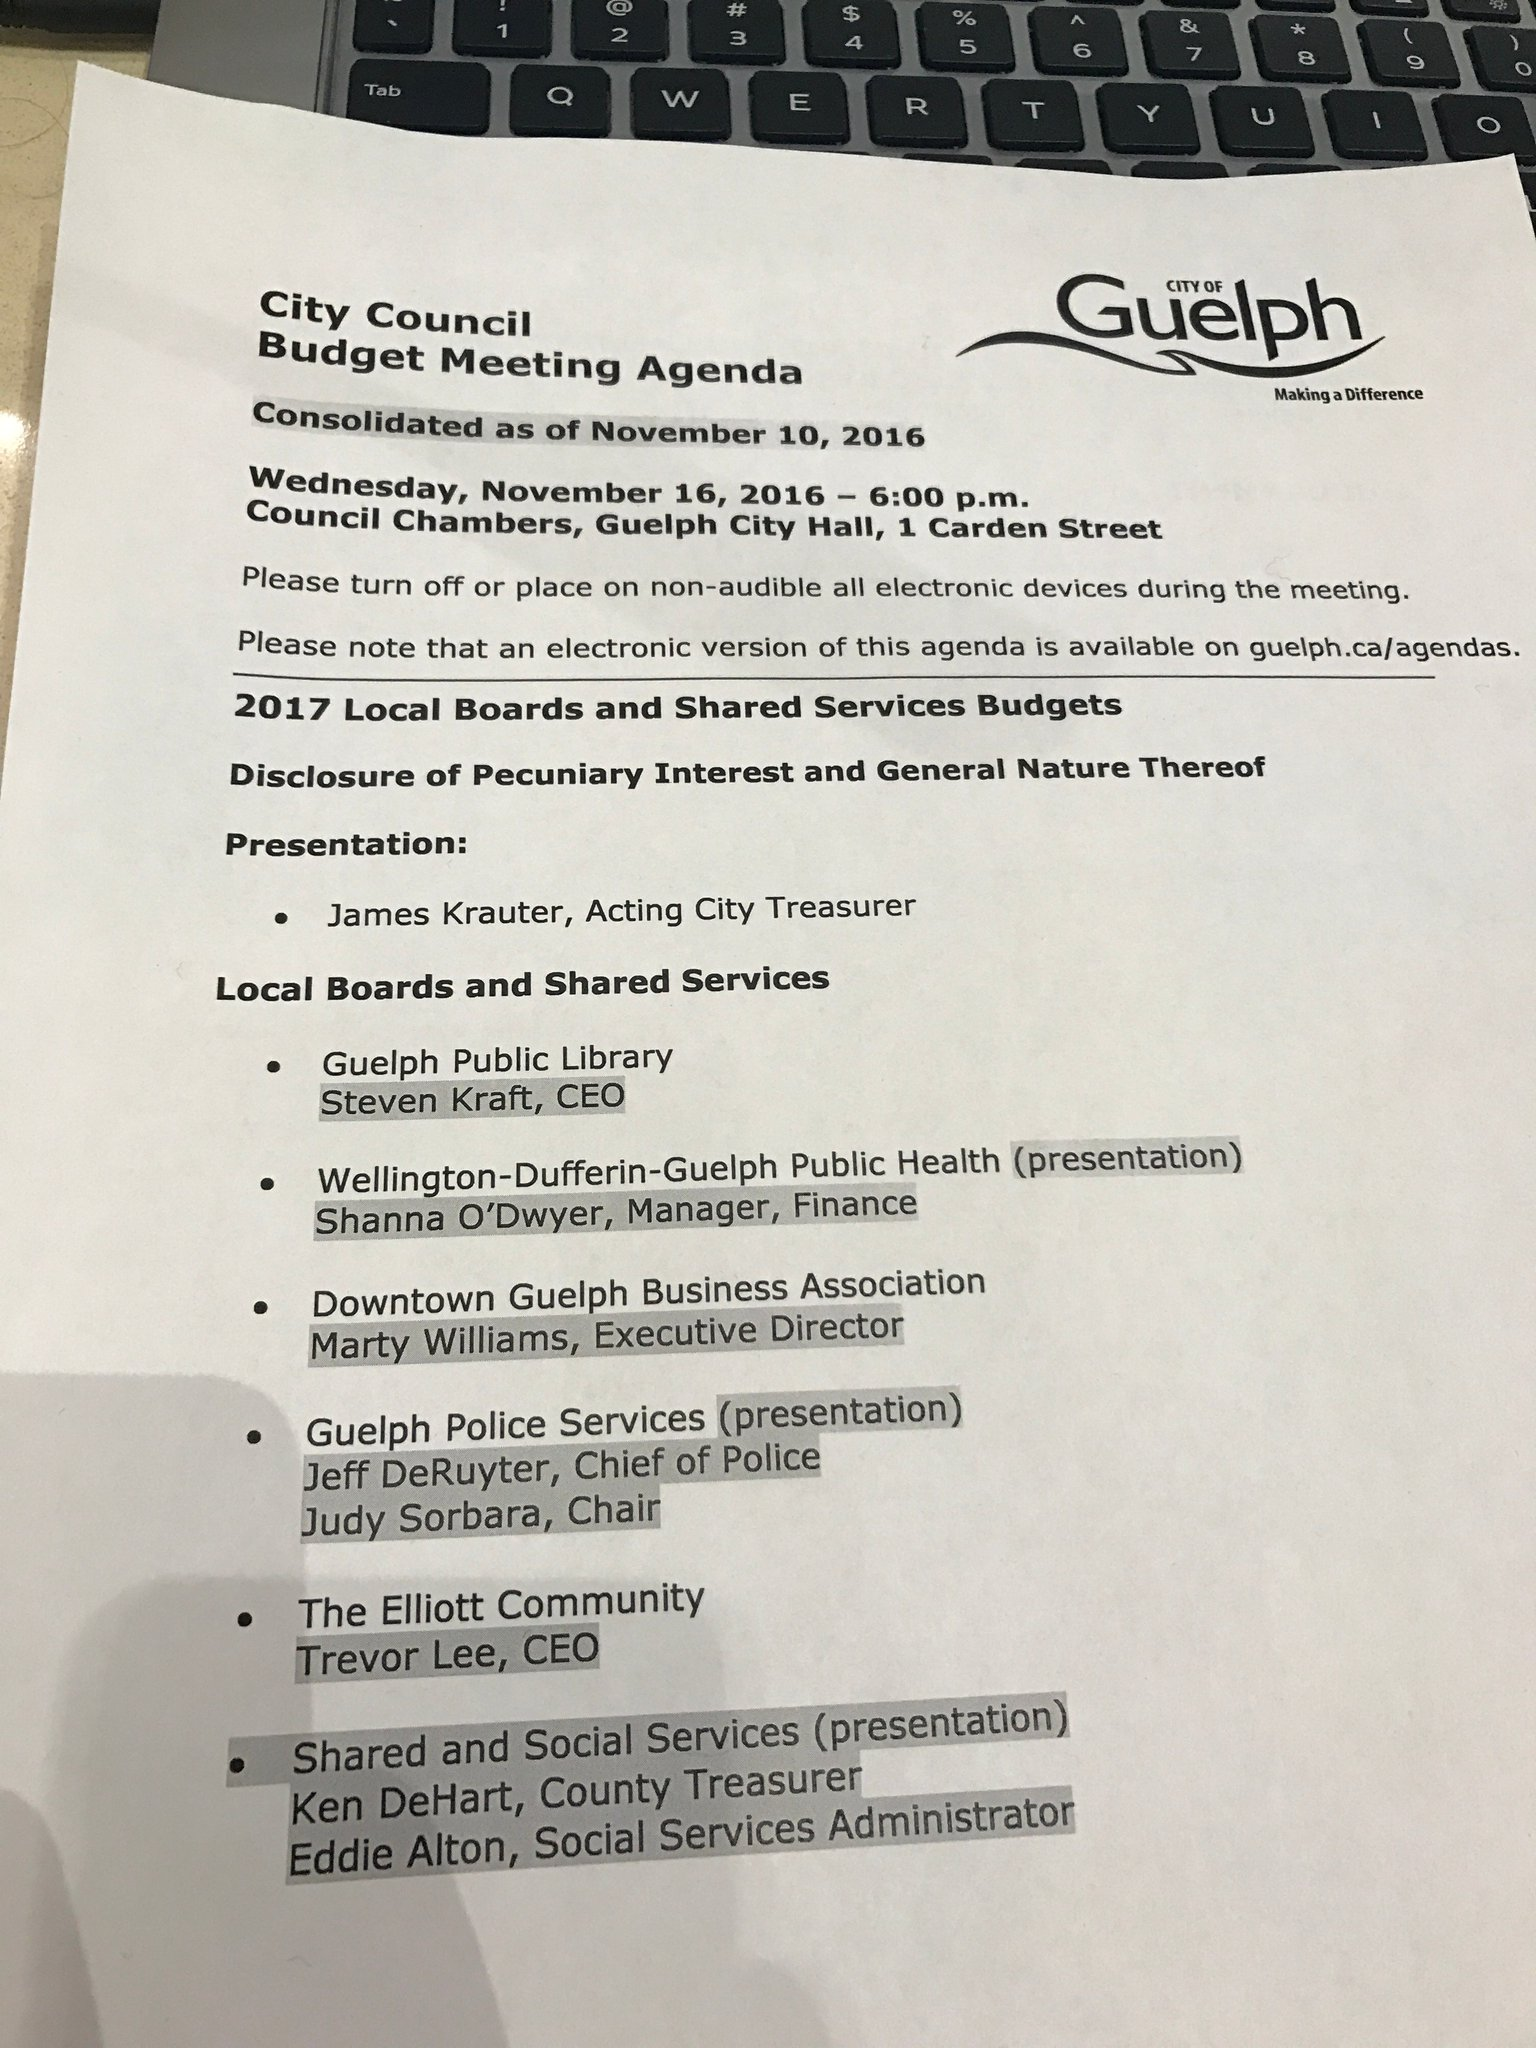 Bradley Breedon here covering #GuelphBudget. We're about to get started, here's a preview of the agenda for tonight. https://t.co/fu6d0QtVHR